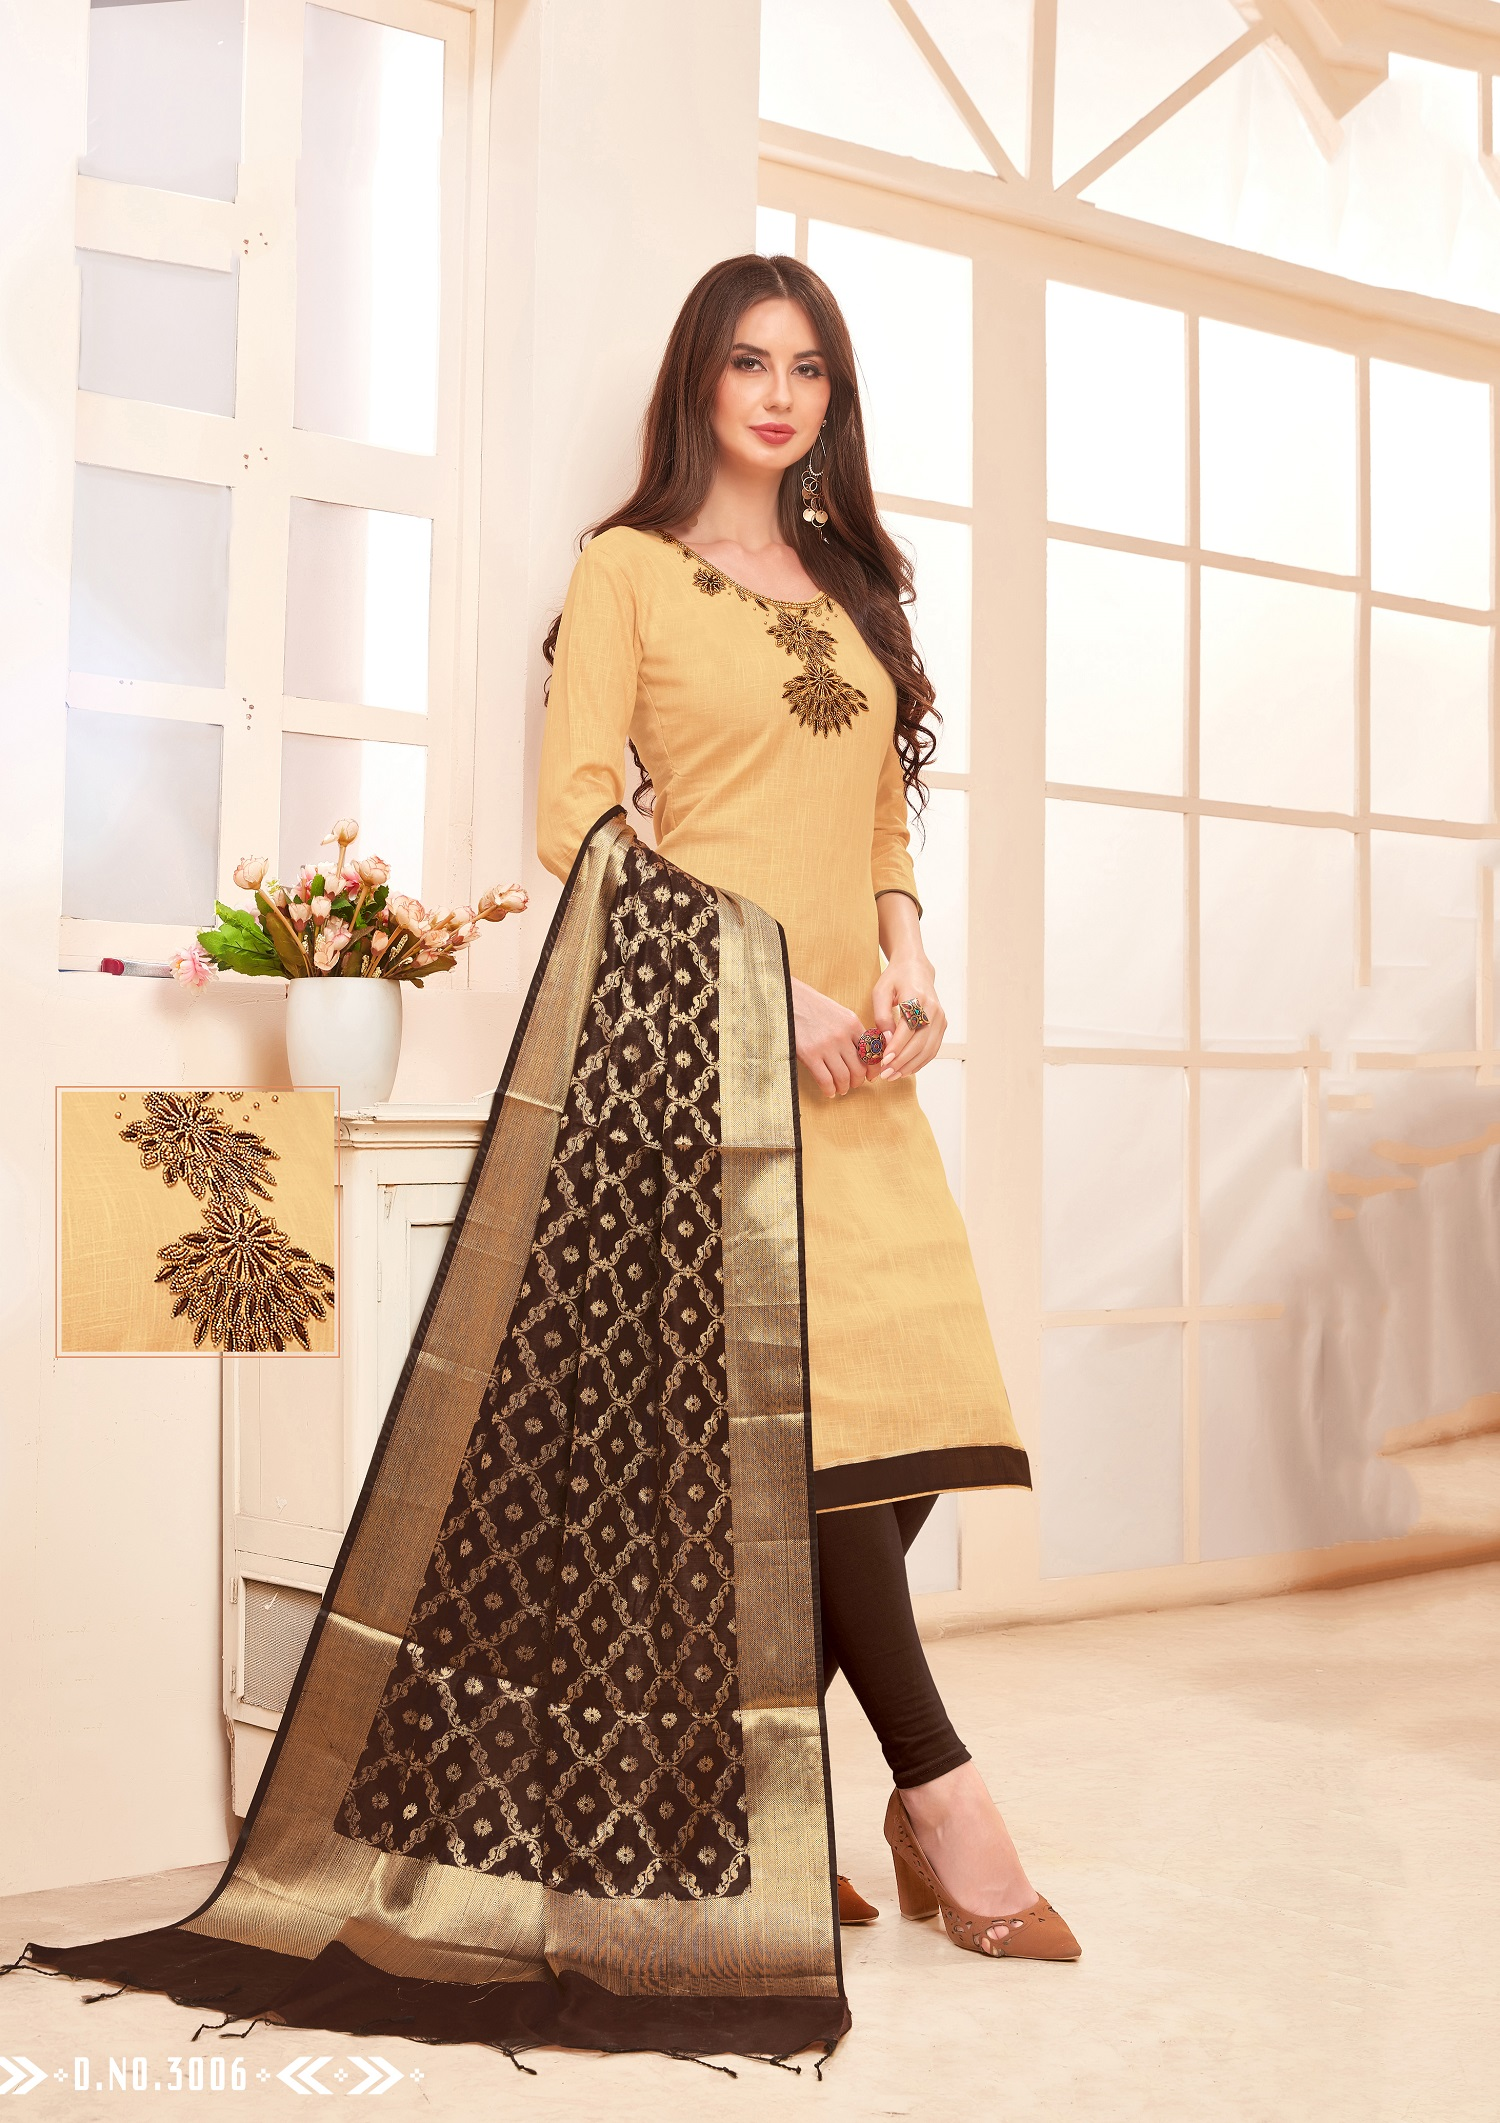 Designer Salwar Suit Top And Bottom With Dark Brown And Beige Colour